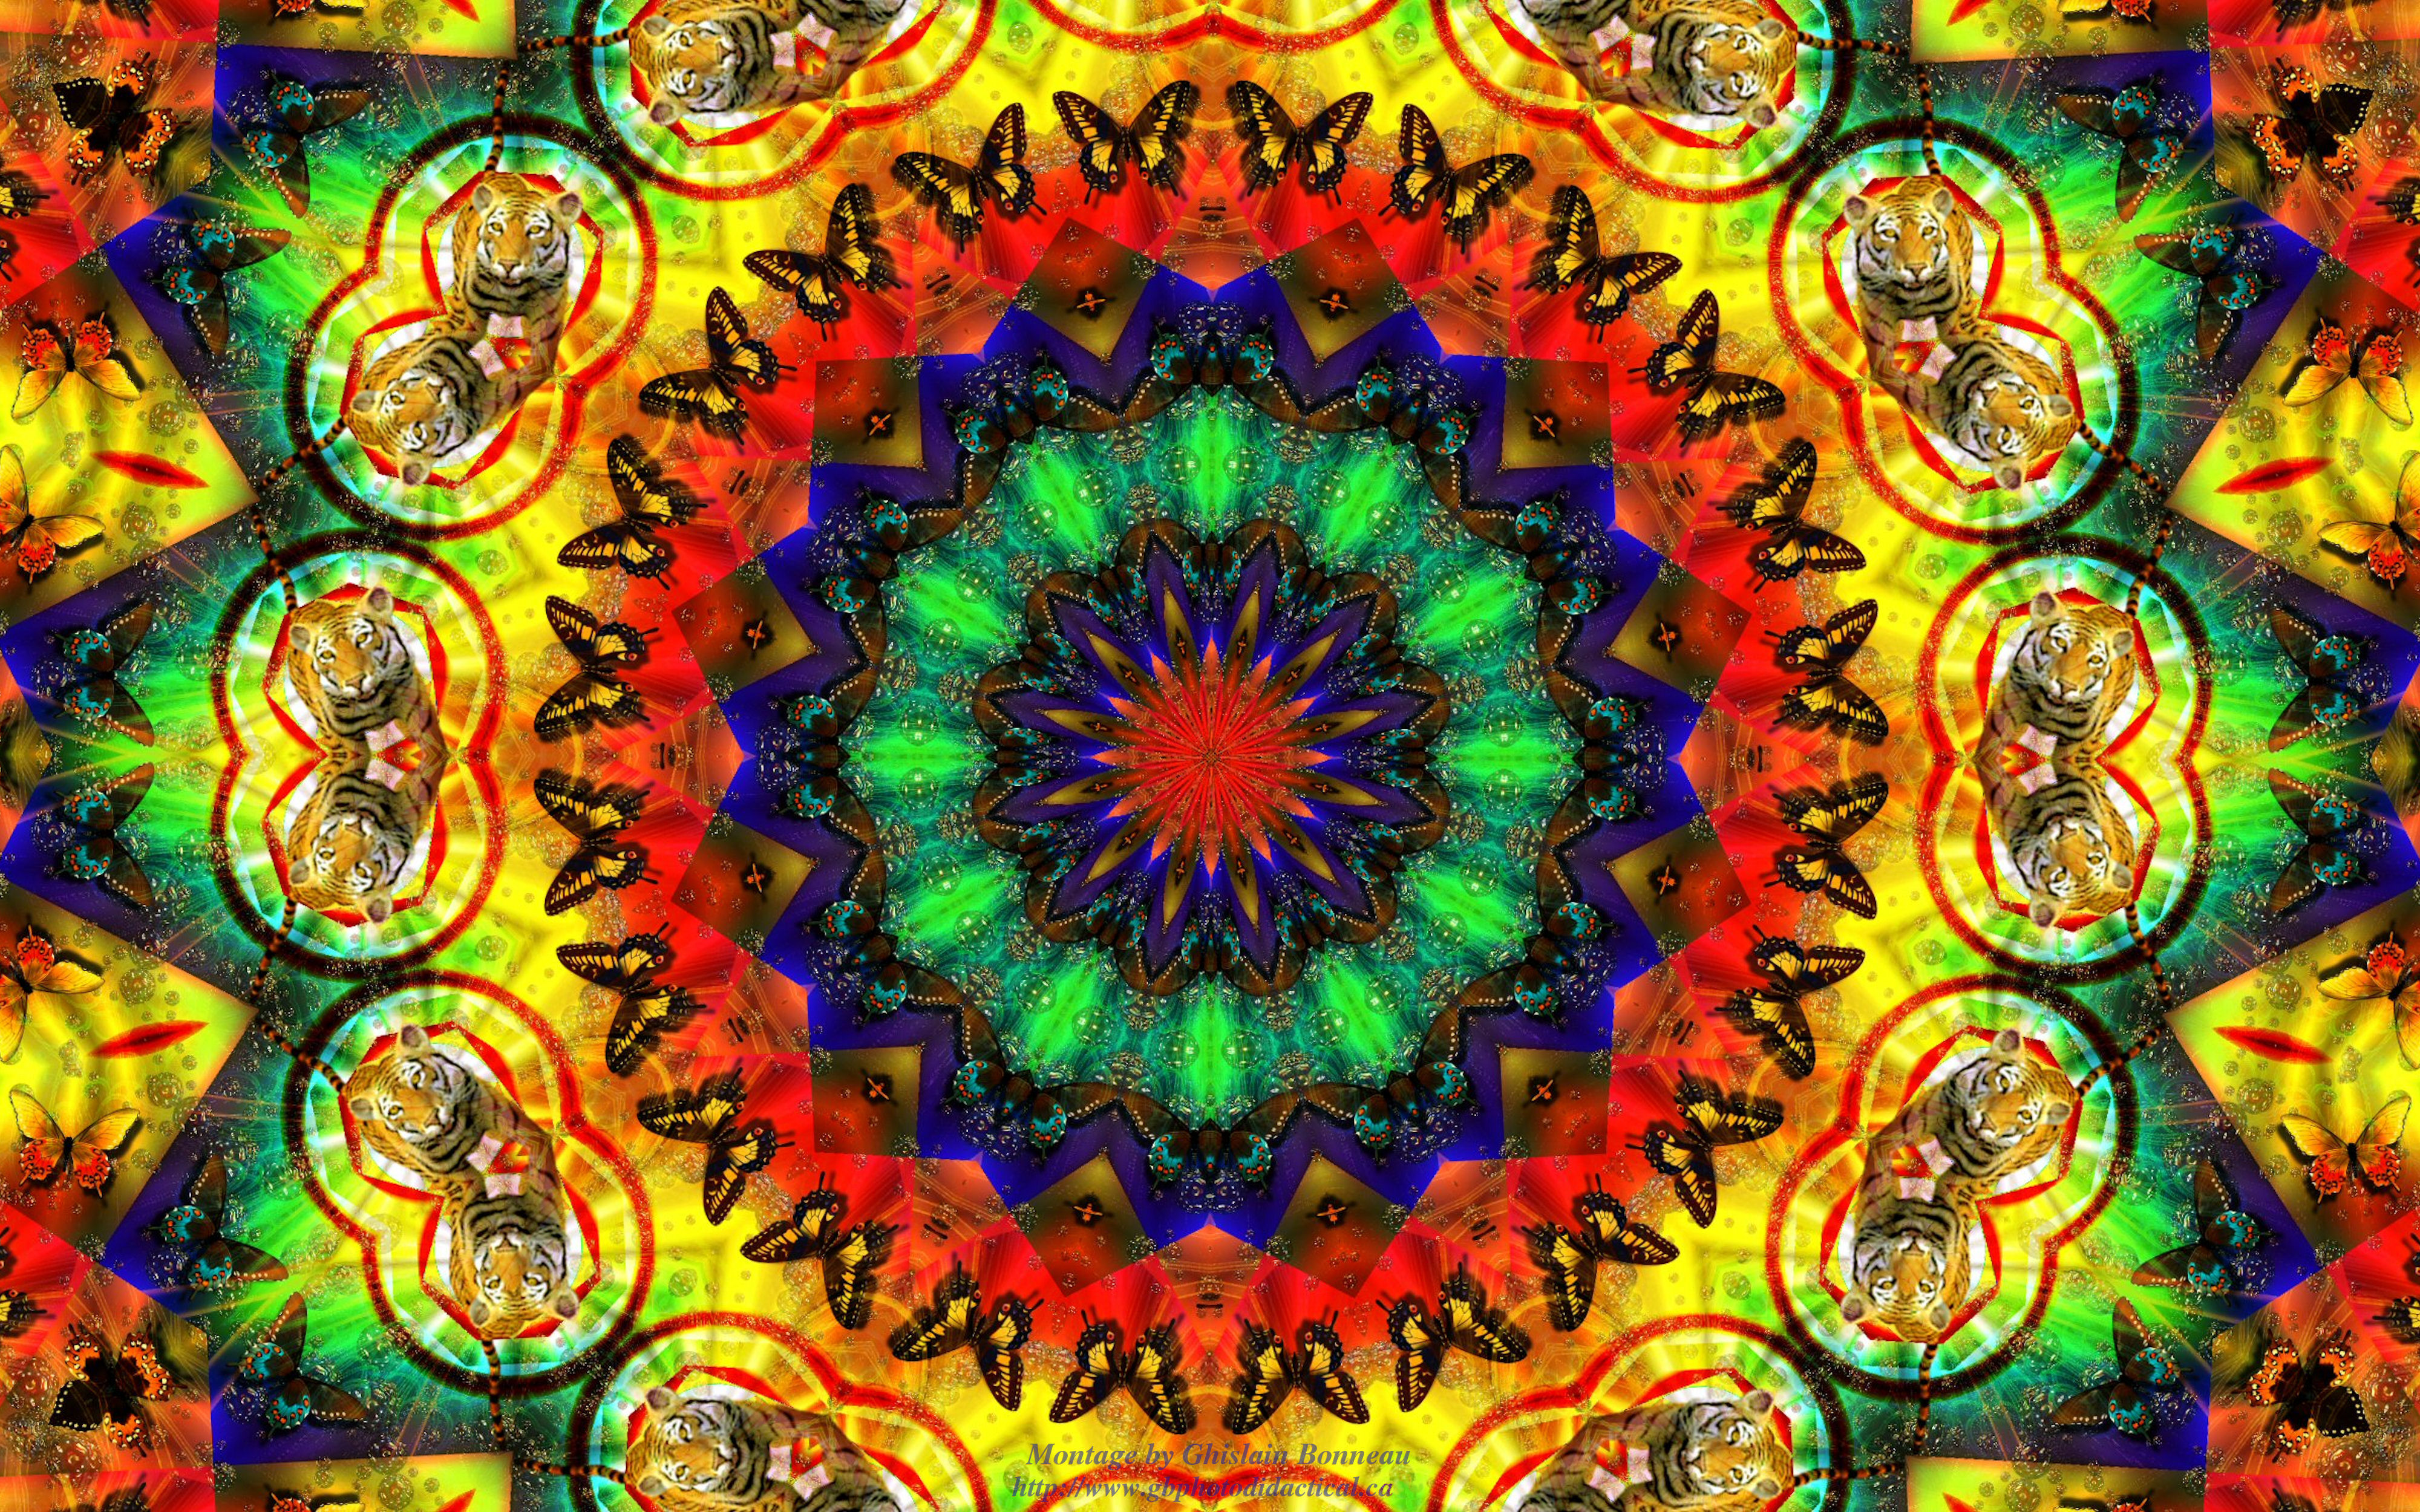 wallpaper psychedelic kaleidoscope 19 tiger 1 fs wallpaper psychedelic 4000x2500